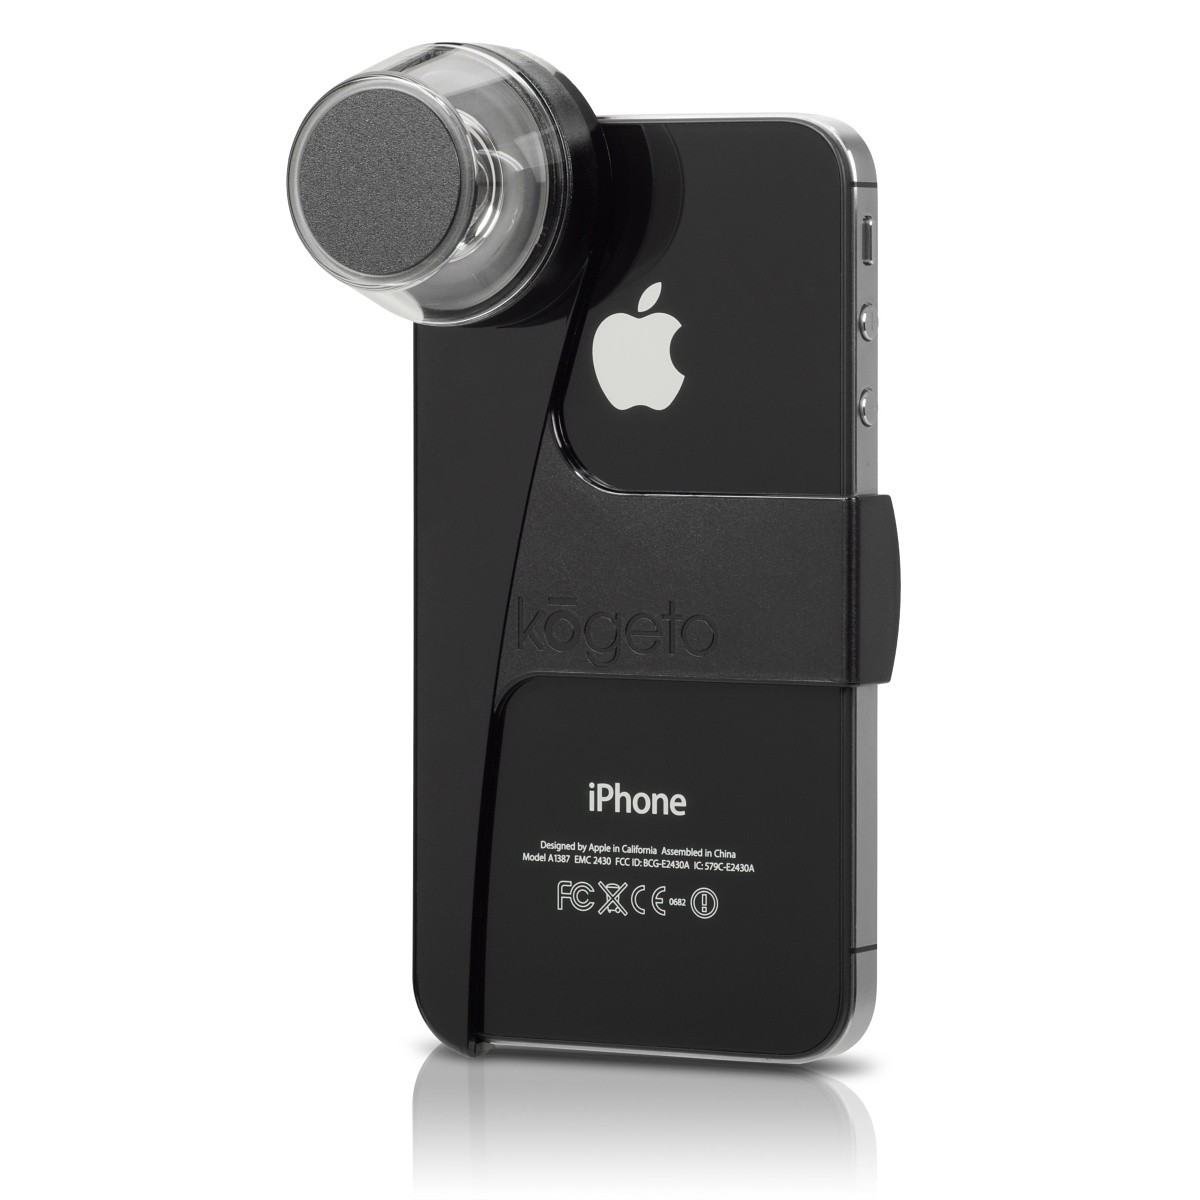 Kogeto Dot Panoramic Video Lens til iPhone 4 /4S - Sort